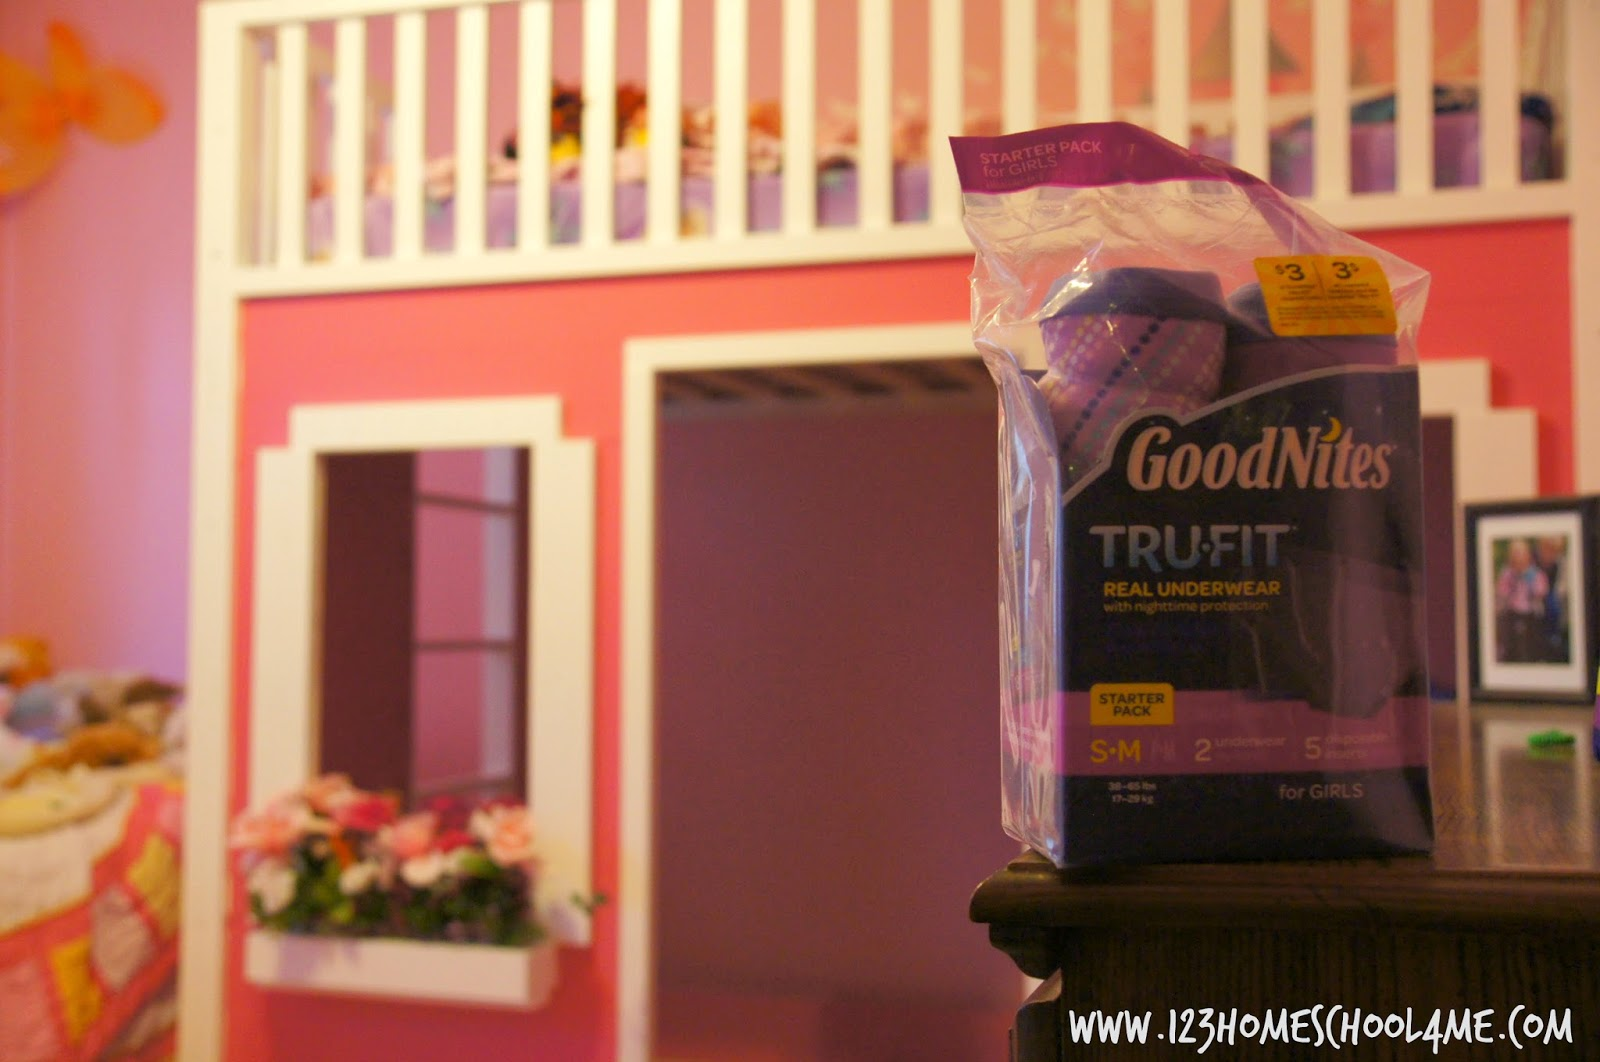 GoodNites* TRU-FIT* are machine-washable, real underwear with disposable, absorbent inserts that help keep sheets and PJs dry at night.